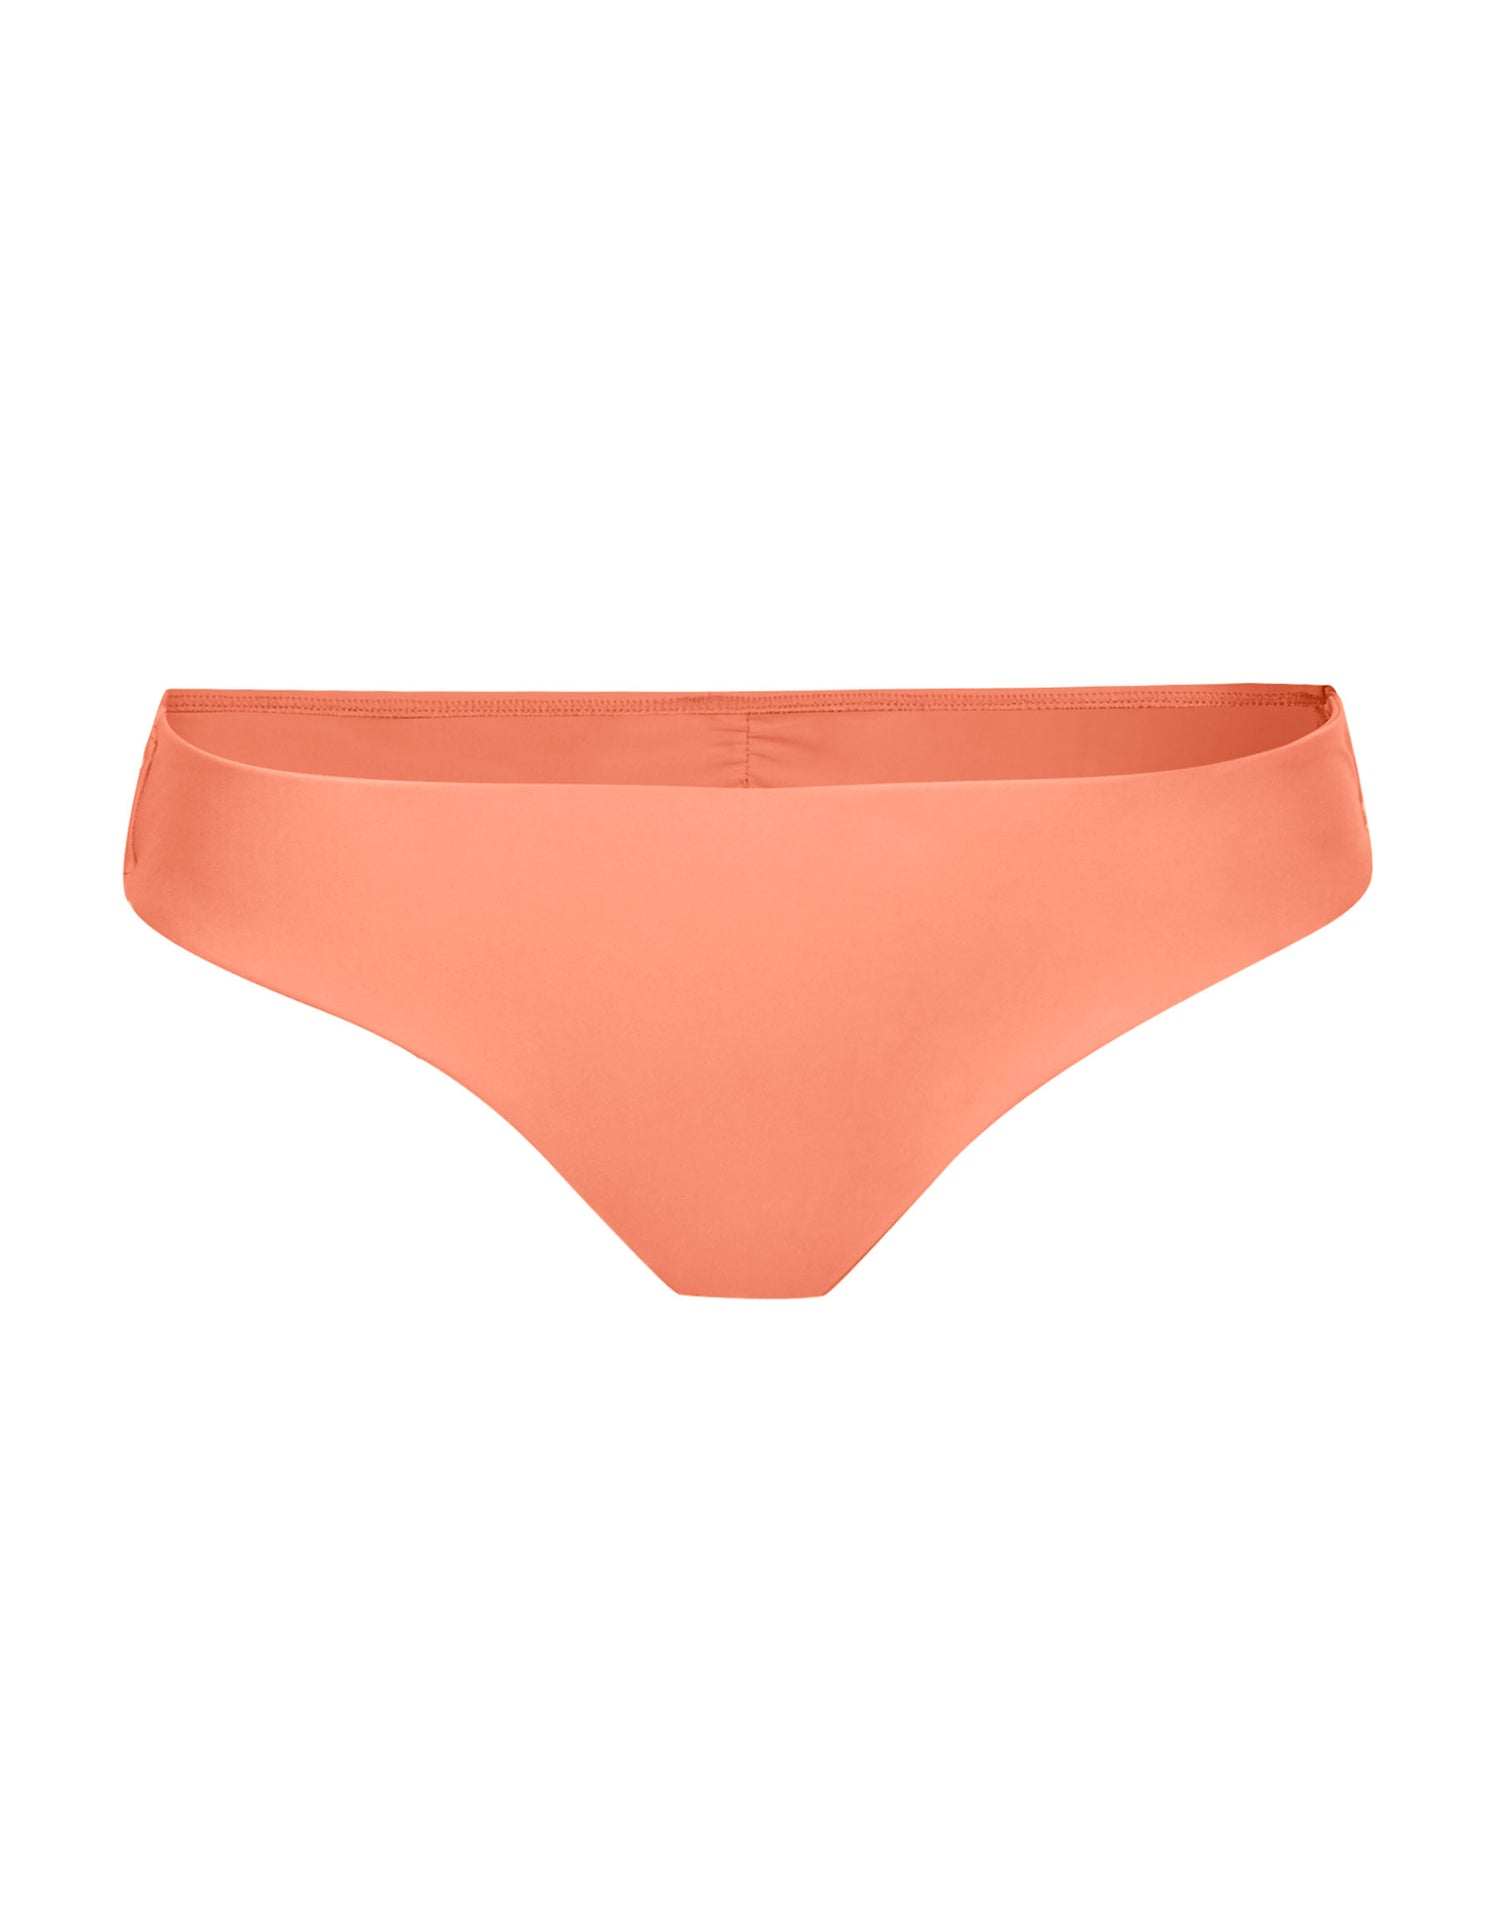 Kate Full Coverage Bikini Bottom in Sorbet - product view